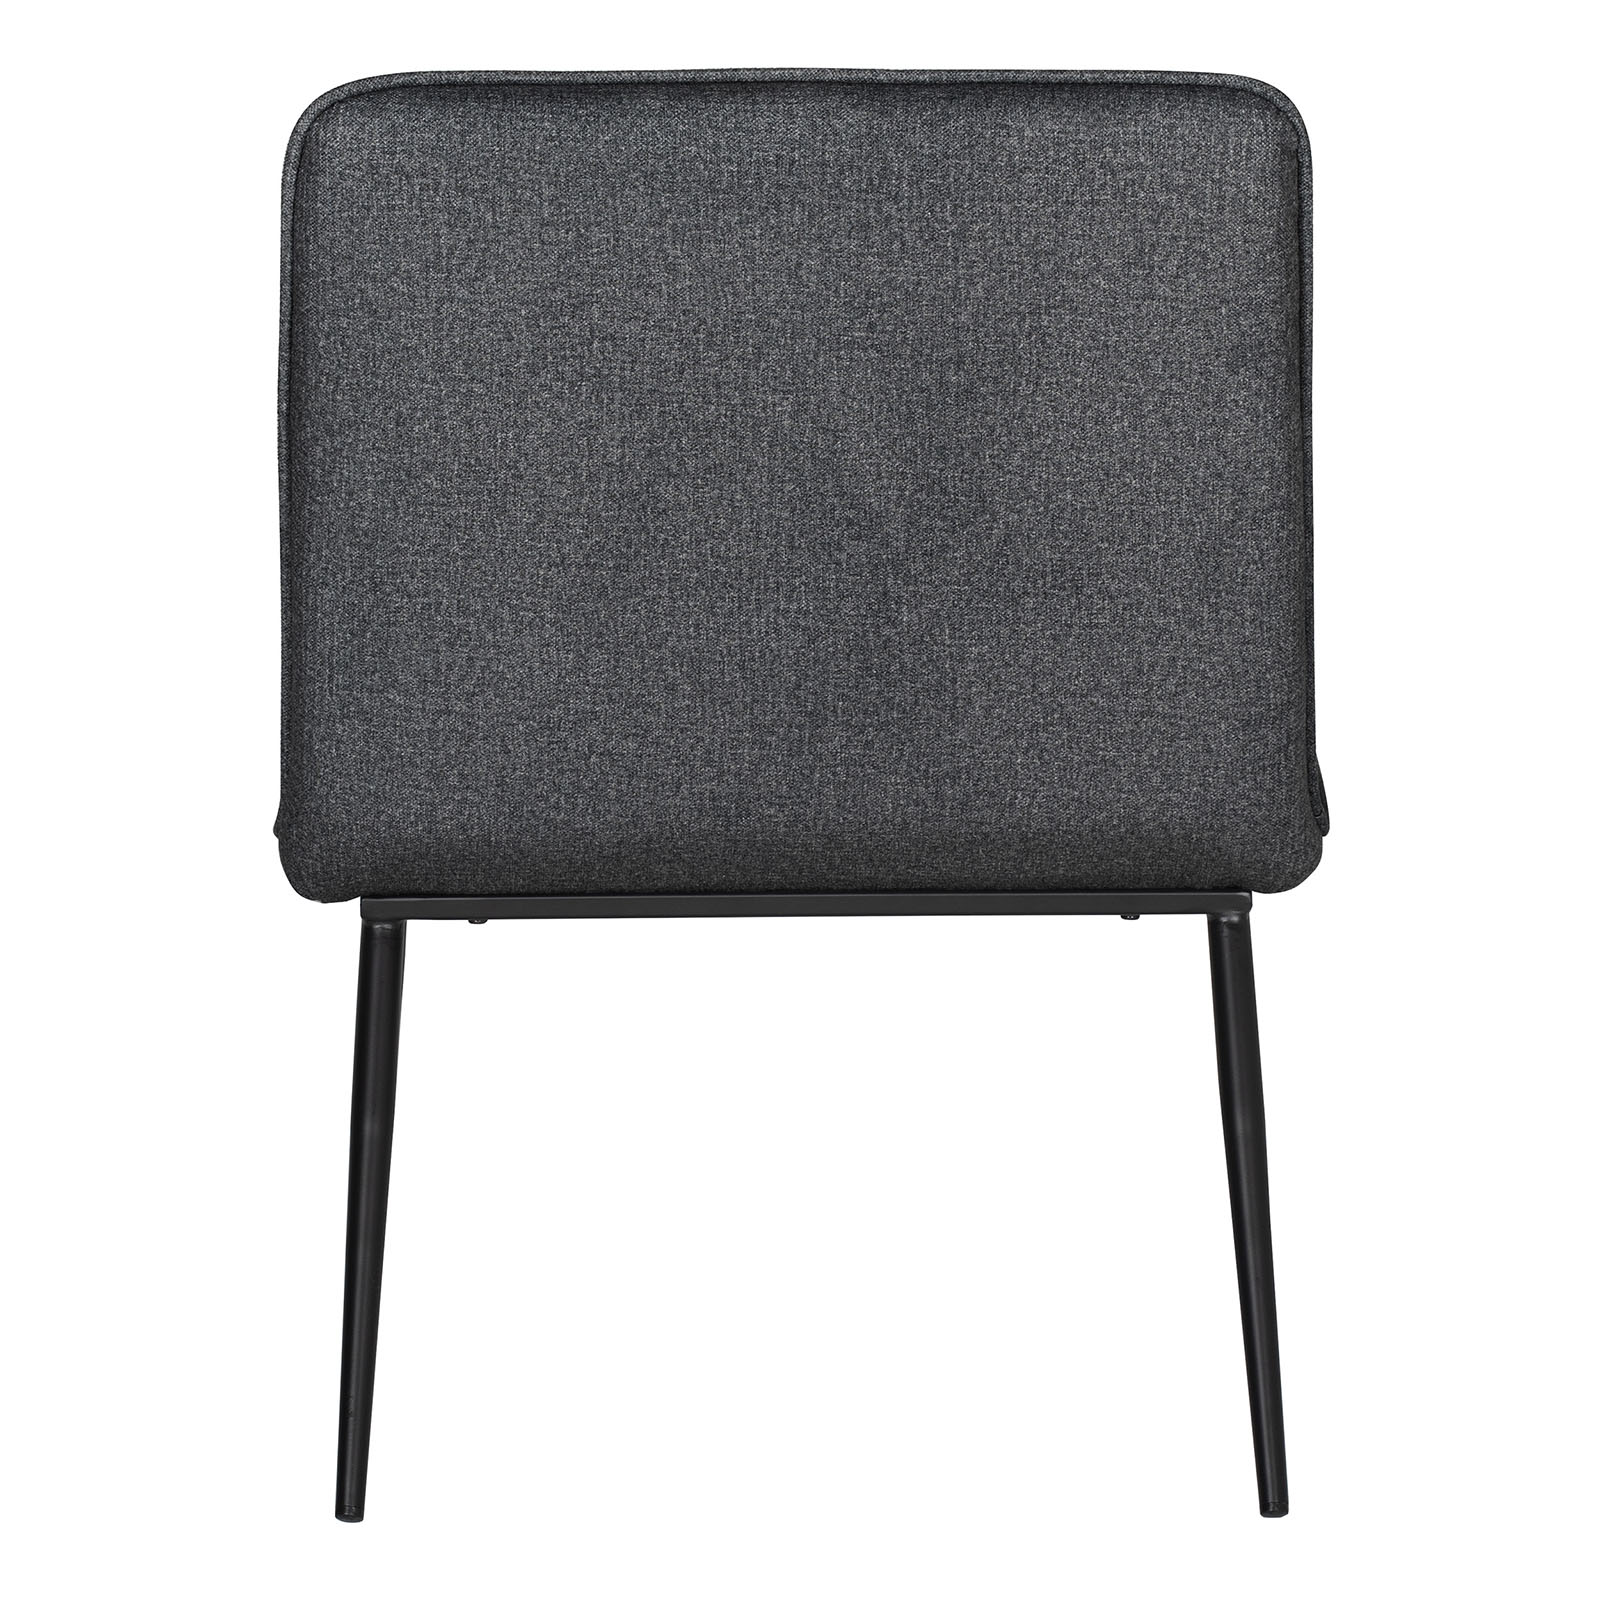 70205 Niche Accent Chair rear